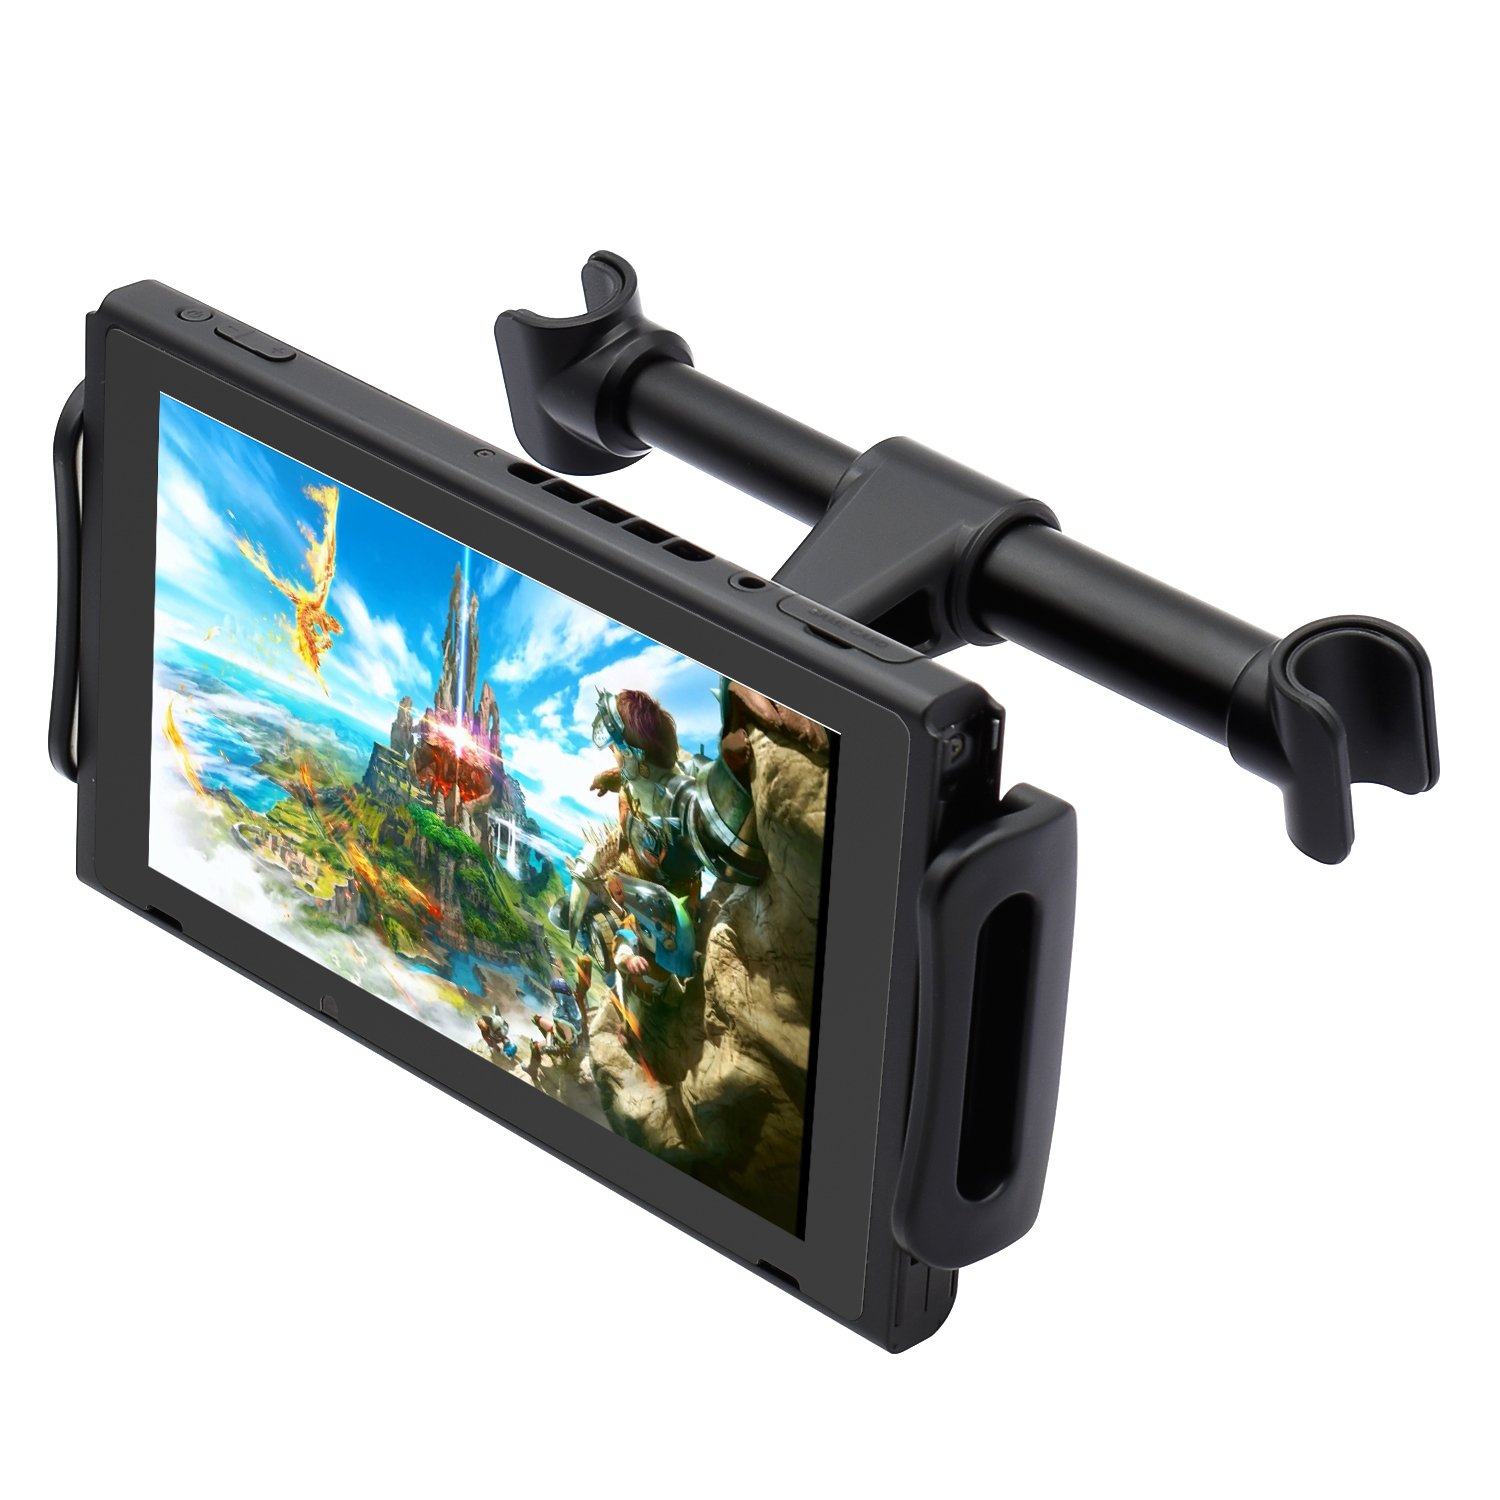 Car Headrest Mount for Nintendo Switch, Adjustable Car Holder for Nintendo Switch/iPhone/iPad and Other Tablets (4''-11'') by FYOUNG